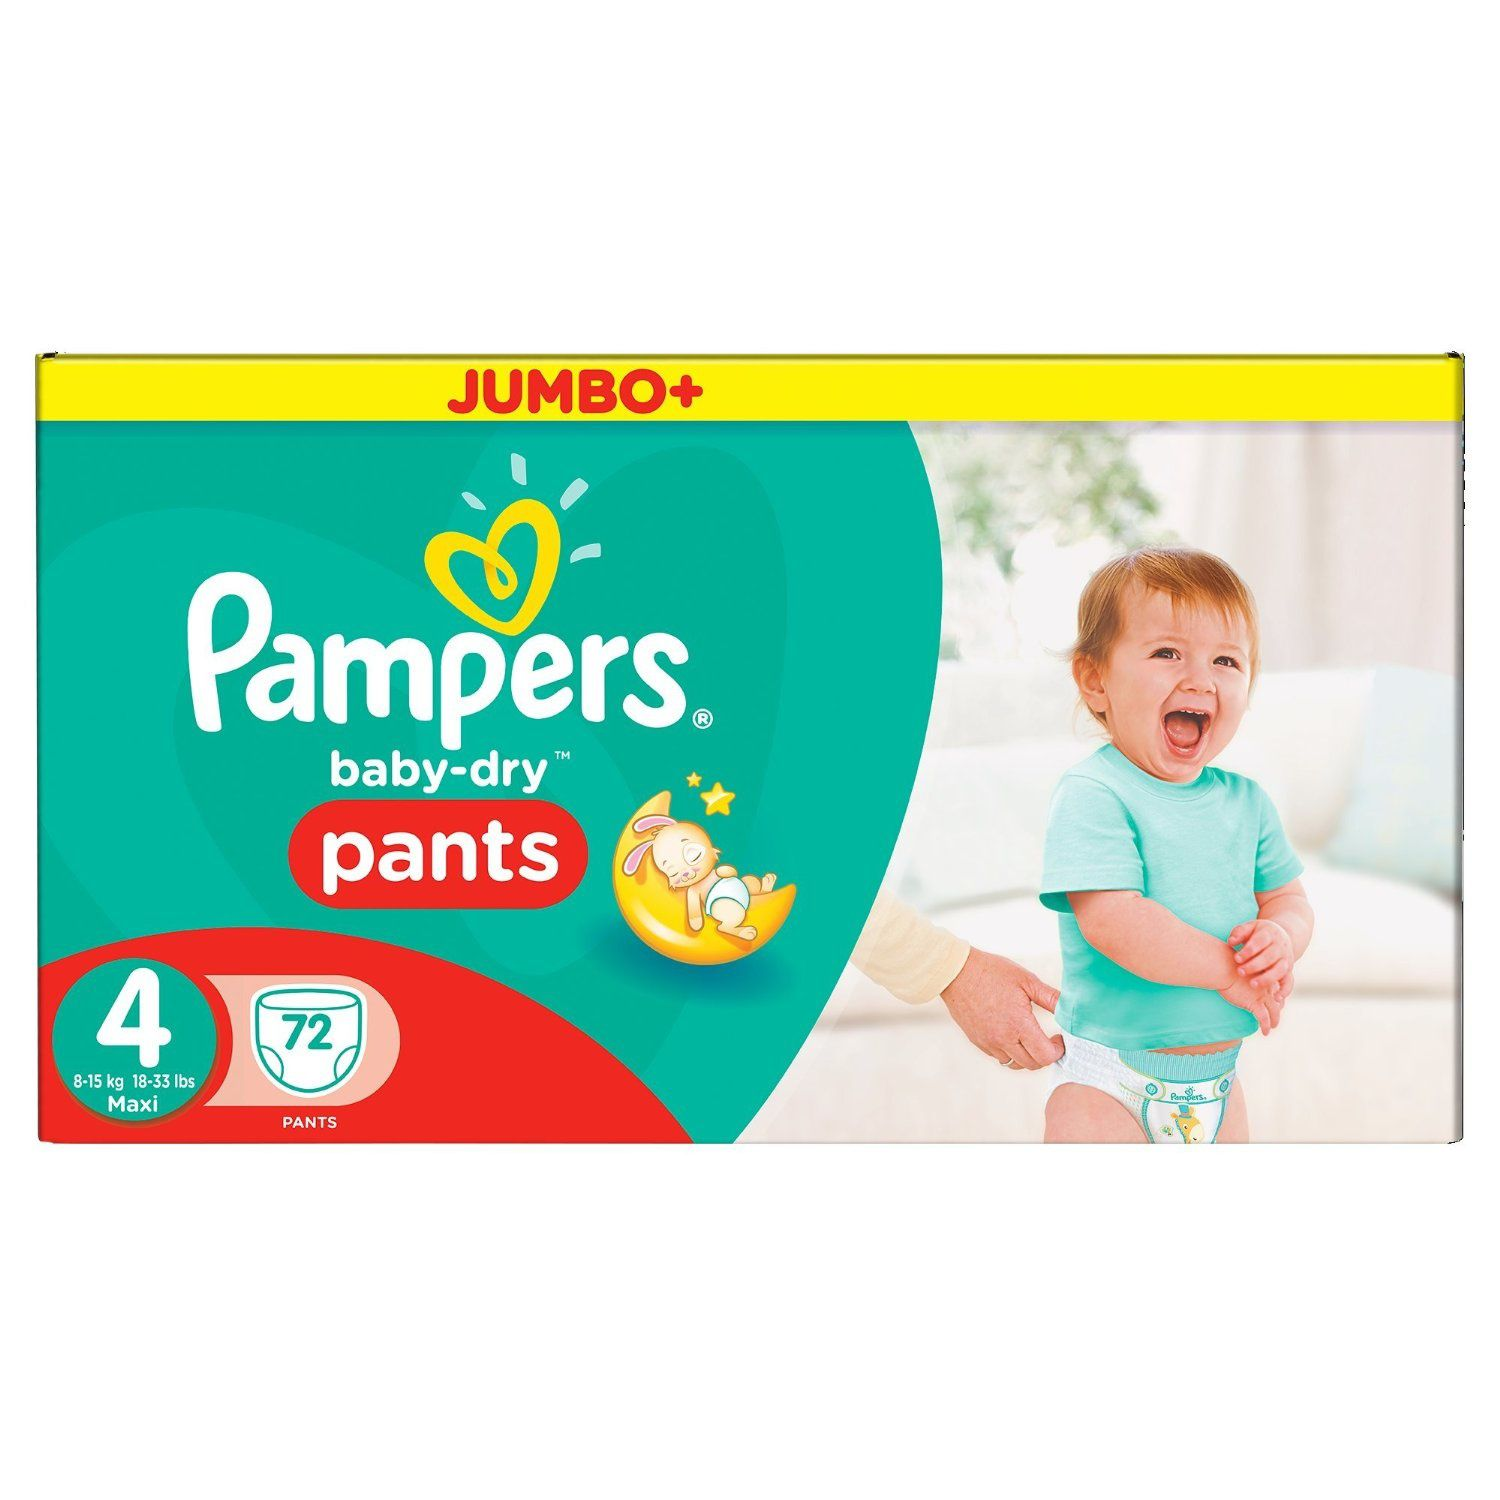 Les couches baby dry panty de pampers les avis de testing girl - Couche baby dry taille 3 ...